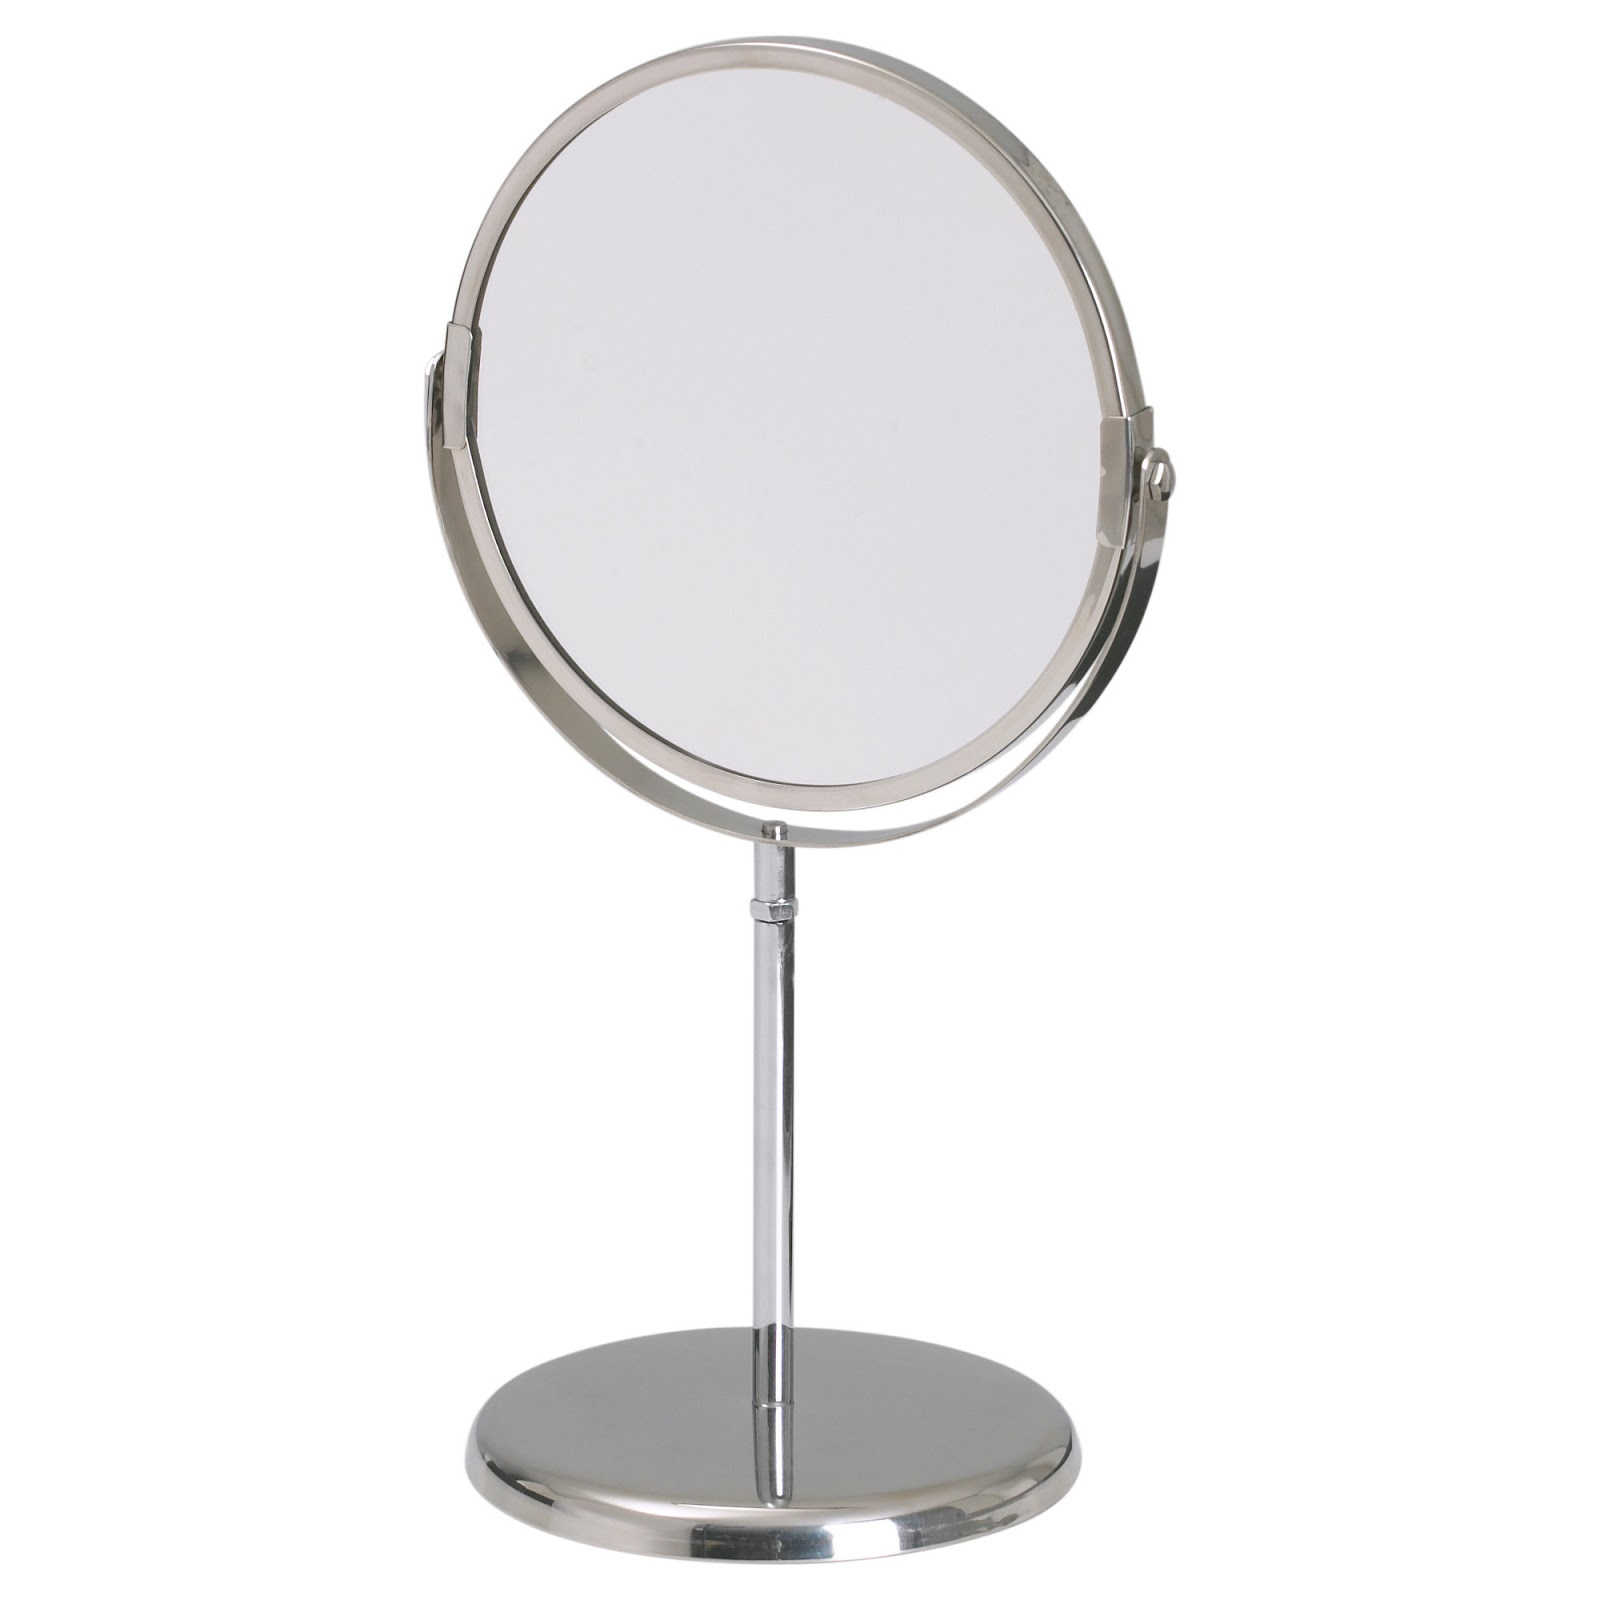 Welkom op beautys delight ikea wishlist nieuw make up hoekje for Ikea miroir sur pied